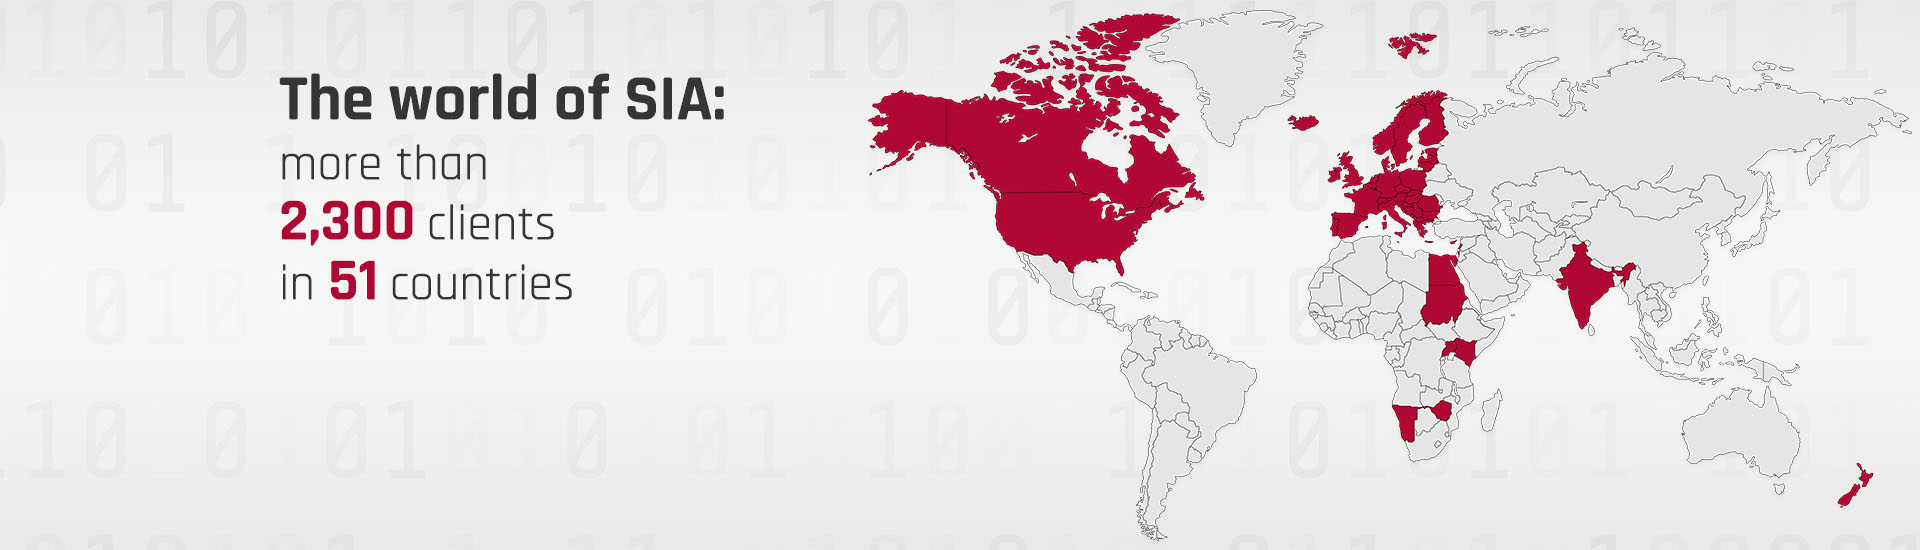 The world of SIA: more than 2,300 clients in 51 countries